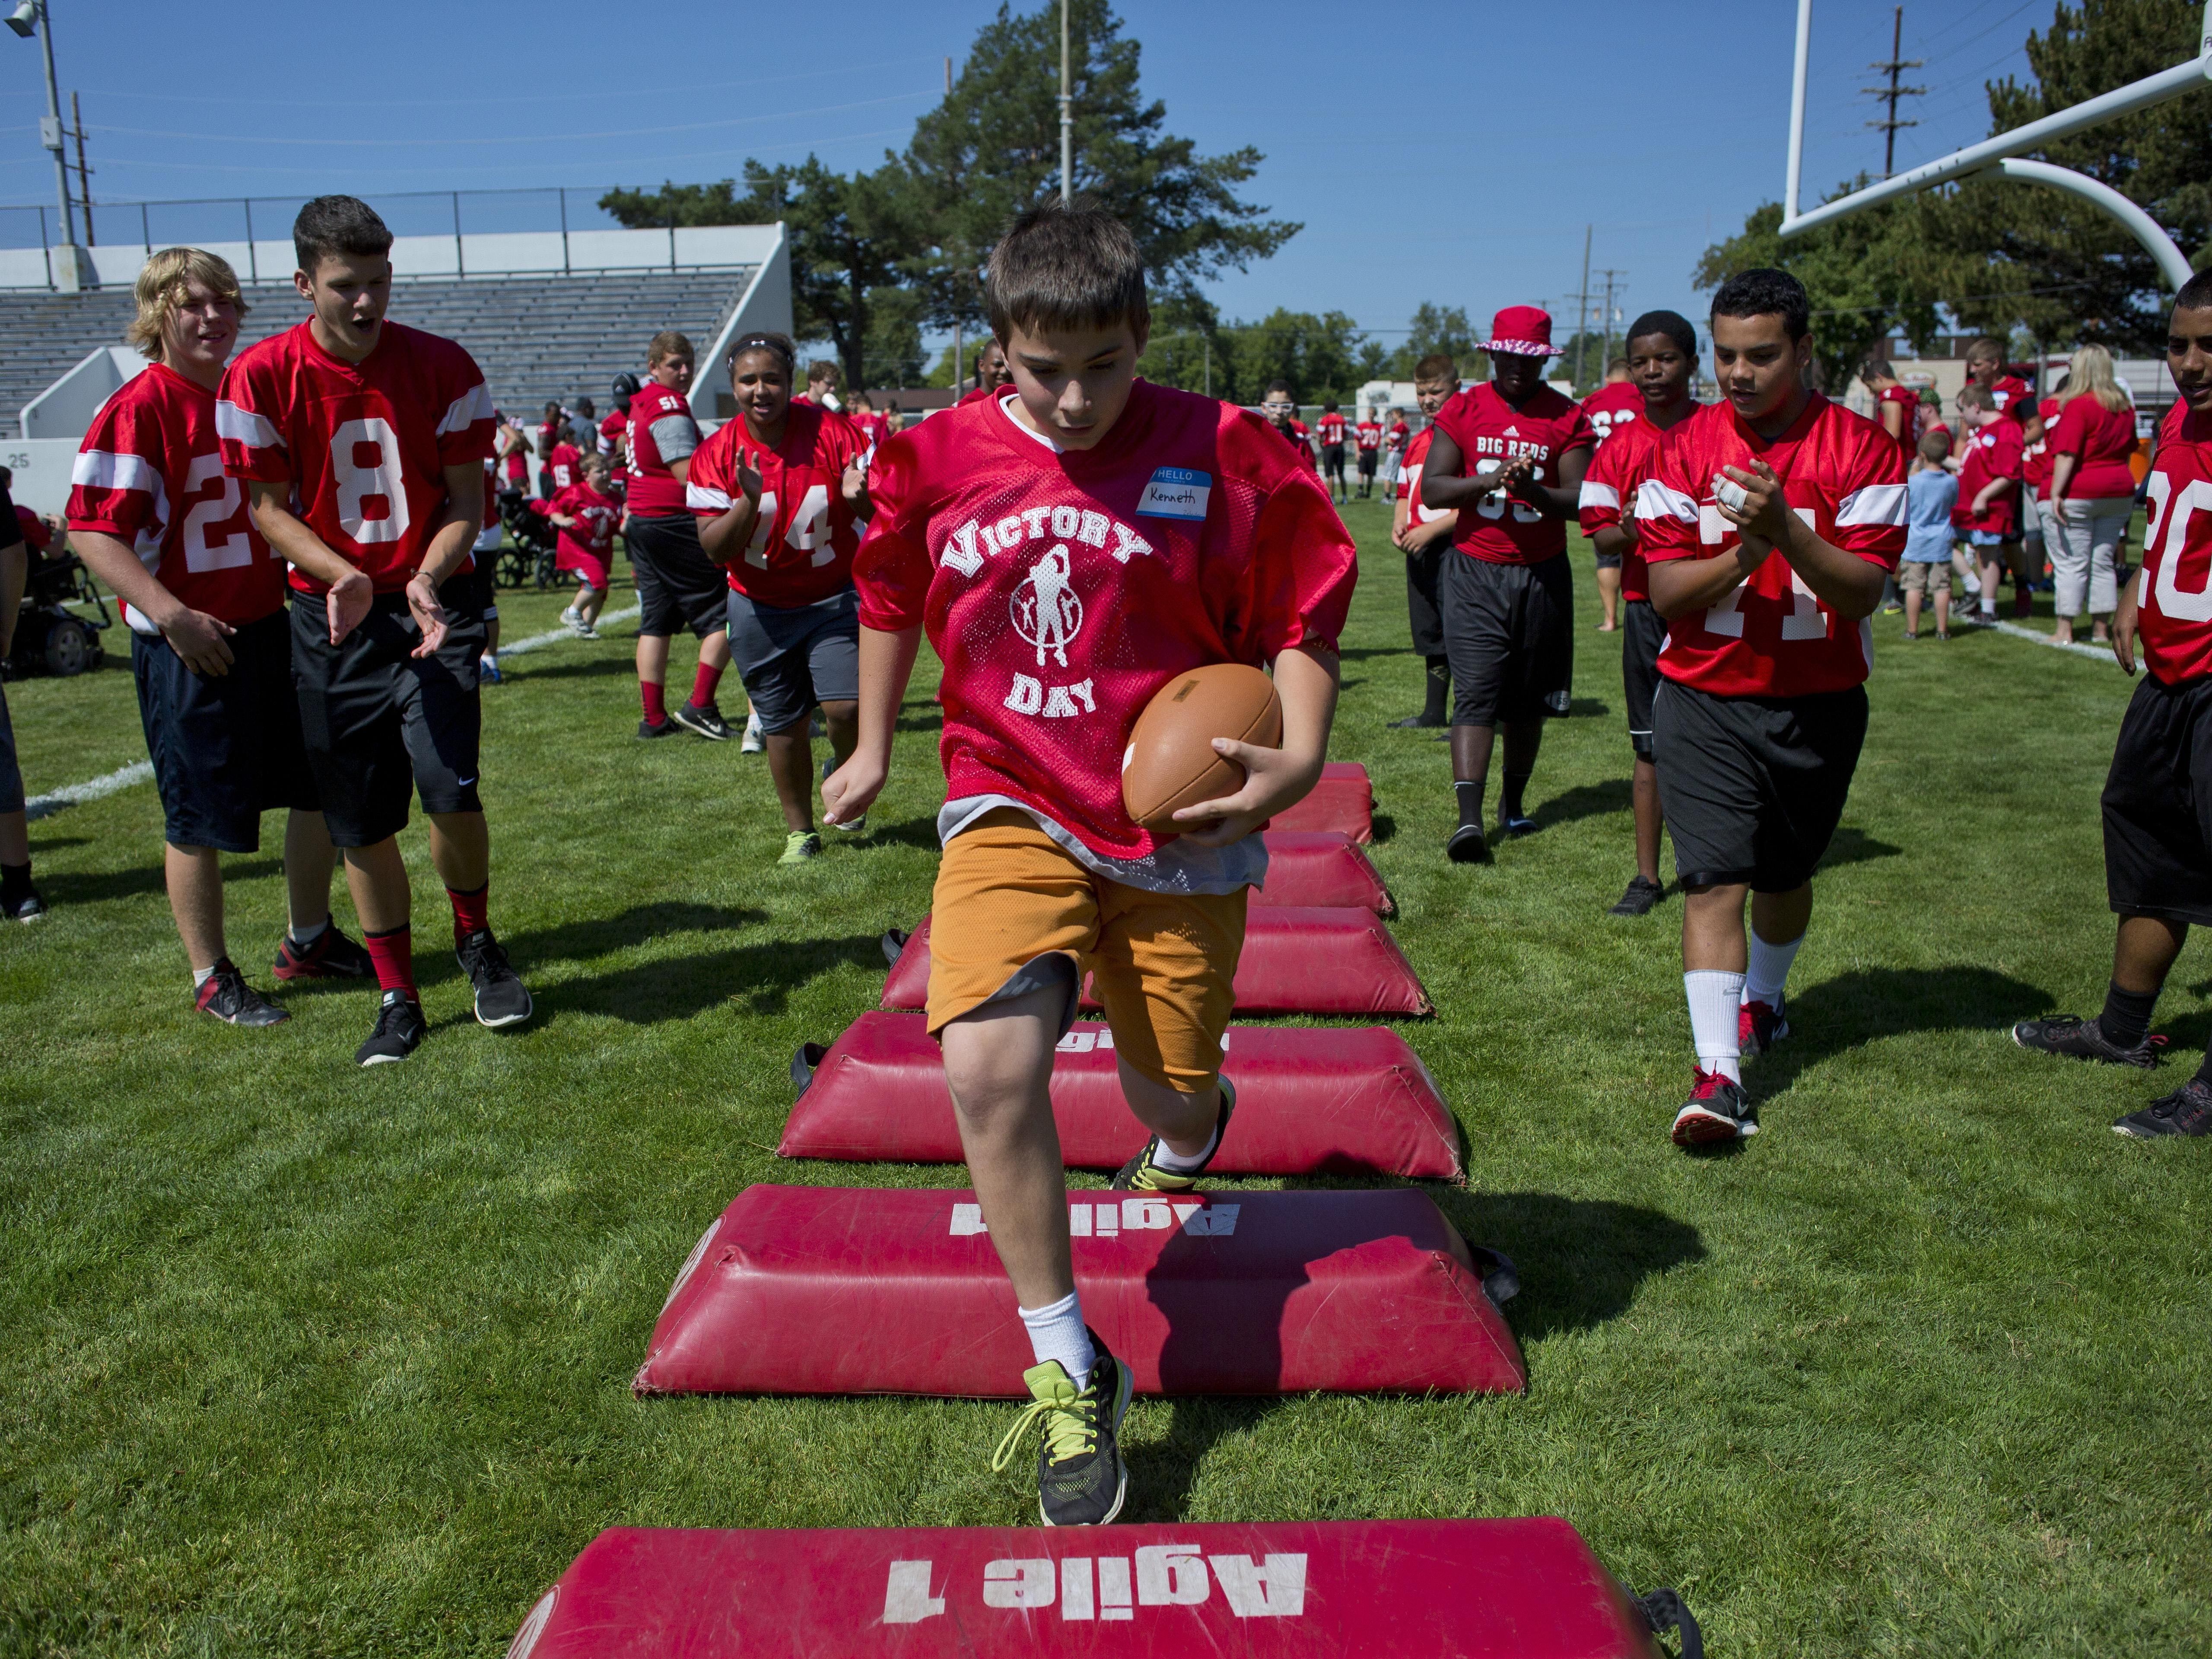 Kenneth Zehnder is cheered on as he runs the ball through obstacles during Victory Day Saturday, August 15, 2015 in Memorial Stadium at Port Huron High School. The event paired special needs students with mentors from the football and cheerleading teams.